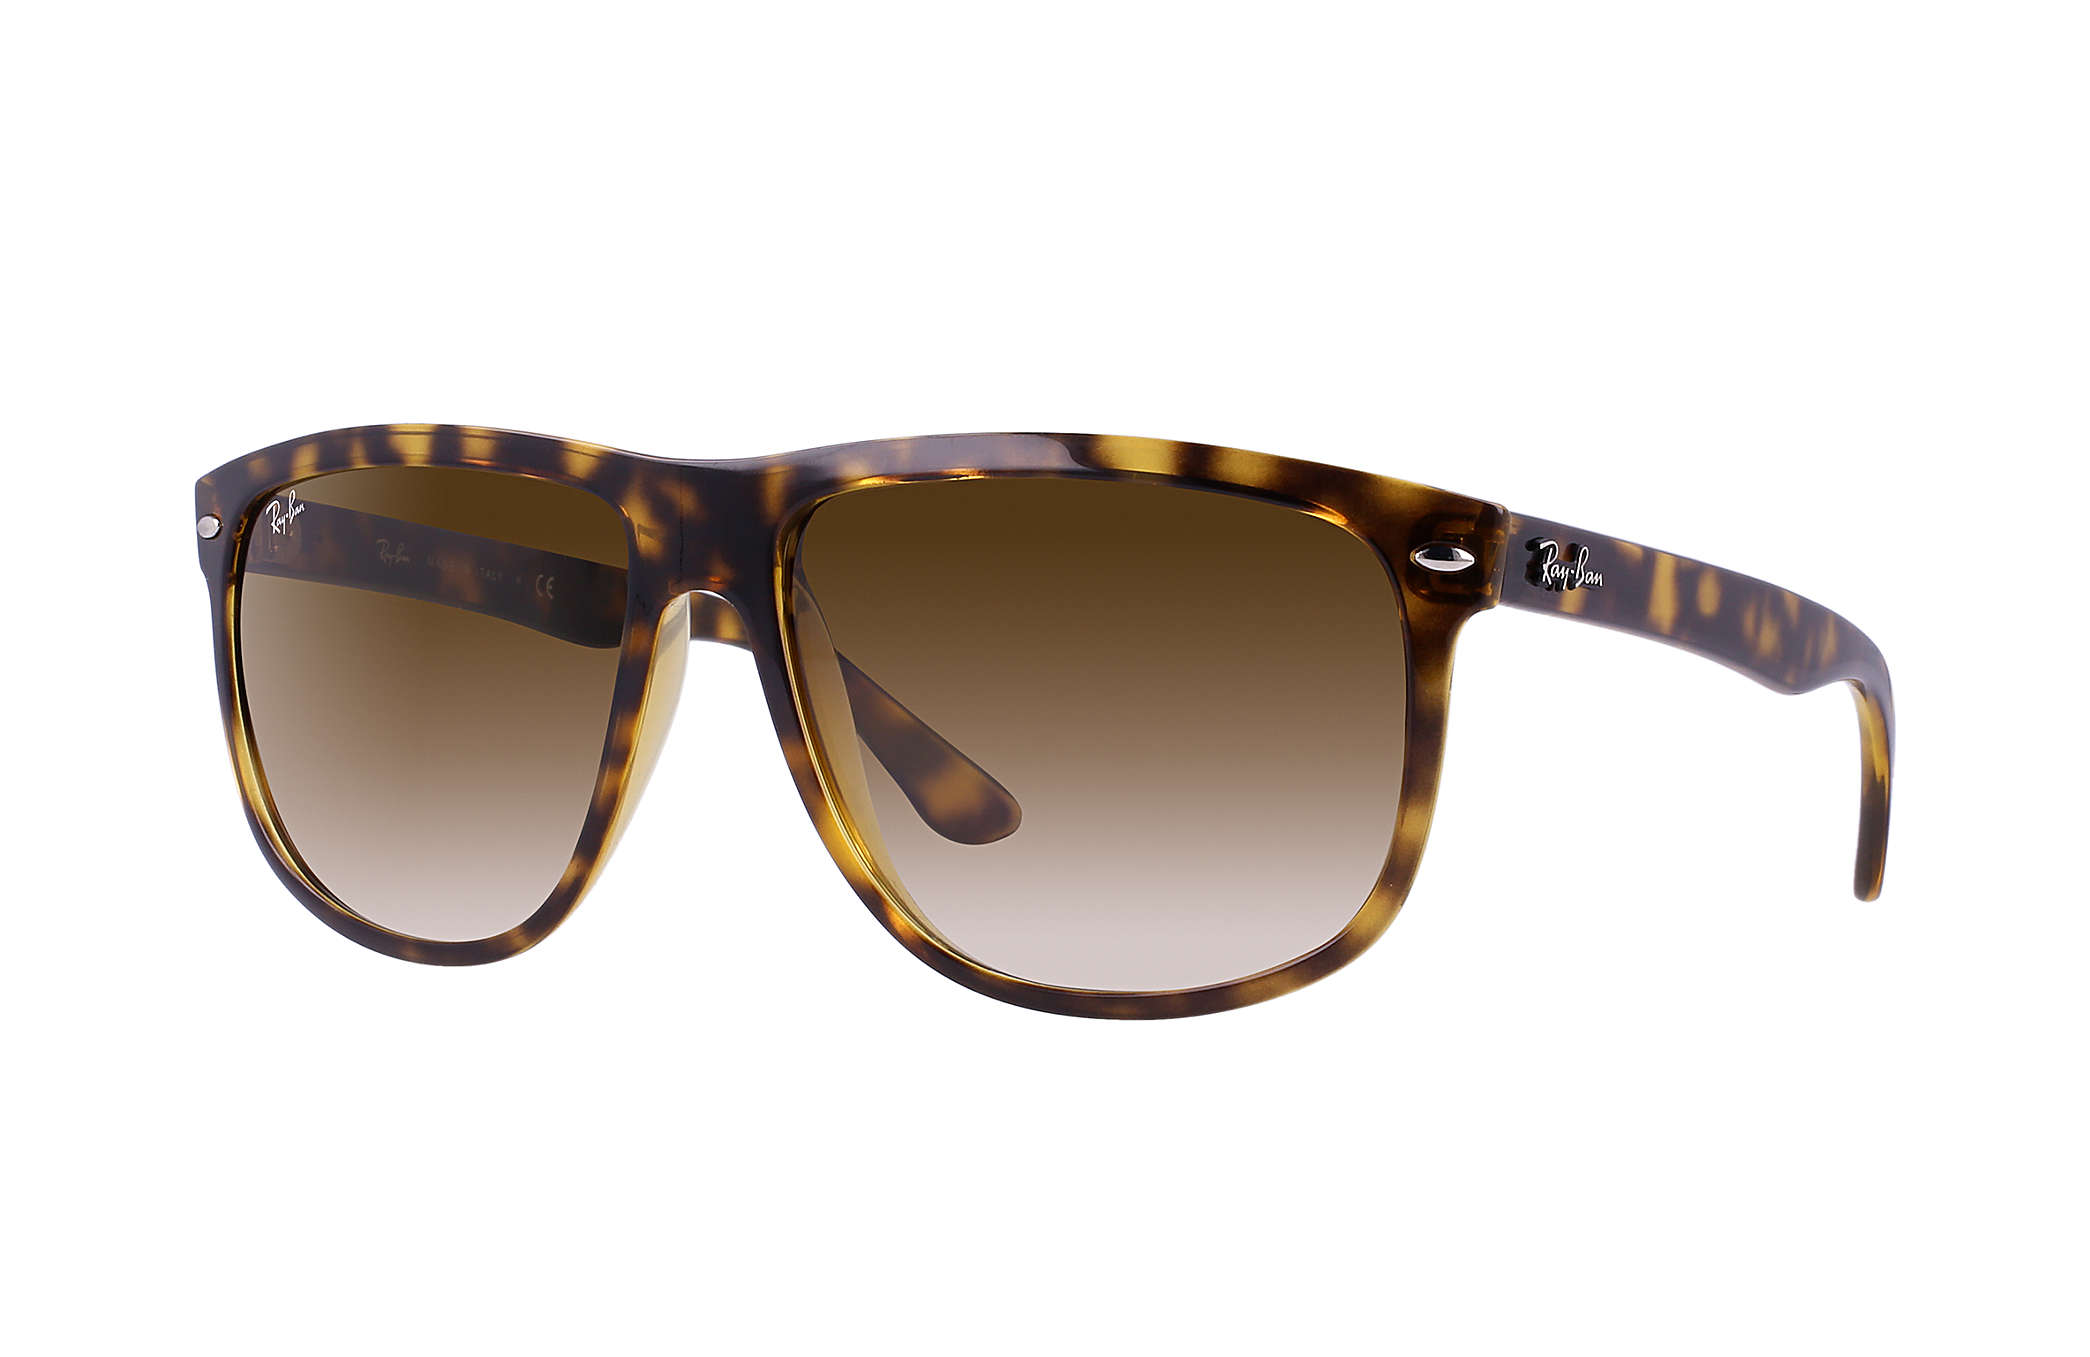 863fb64c157 Details about New Ray Ban RB4147-710 51-60 Tortoise   Brown Gradient 60mm  Sunglasses